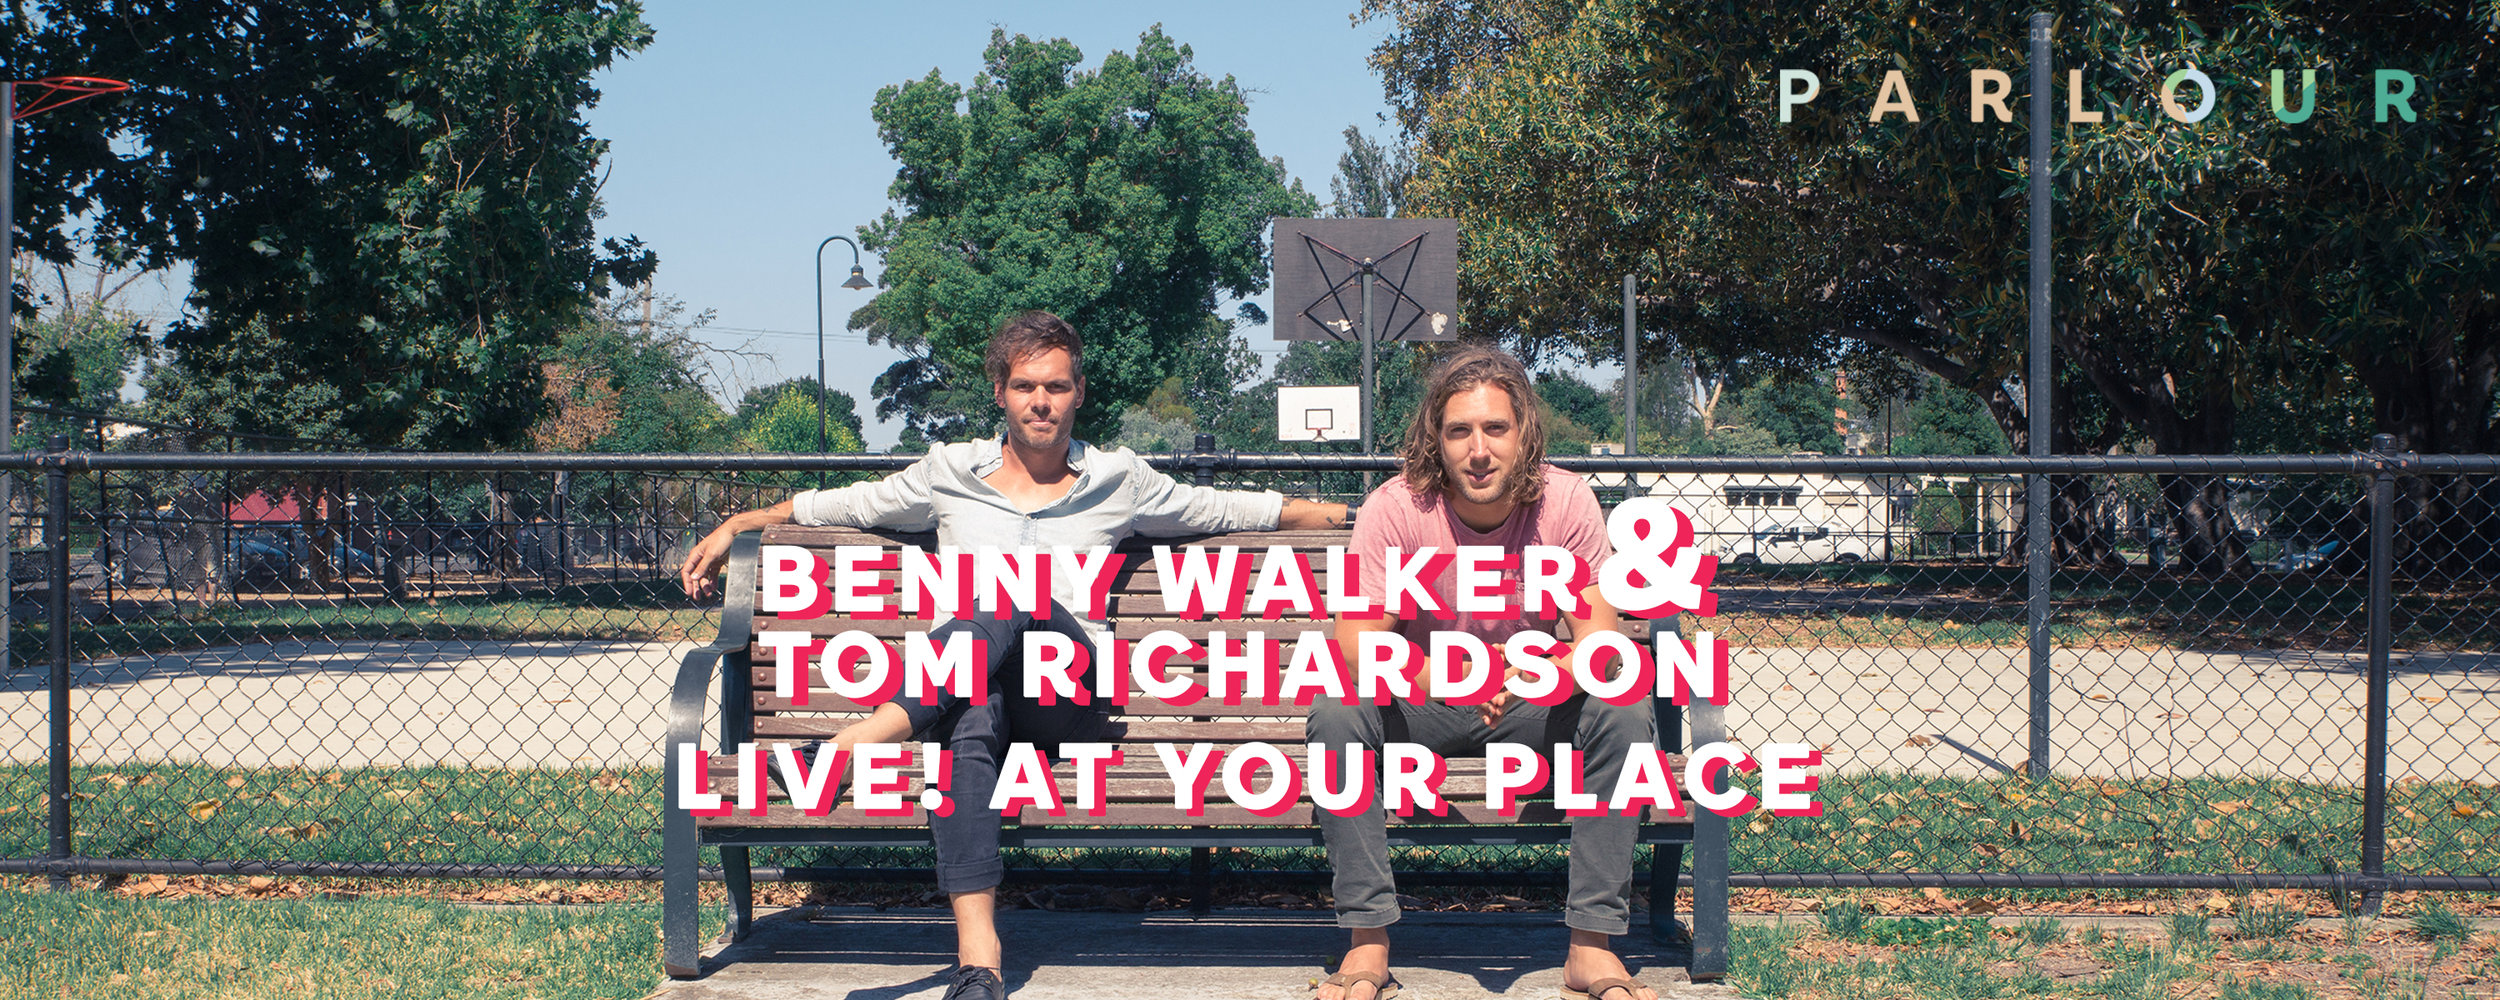 Benny Walker & Tom Richardson Banner.jpg